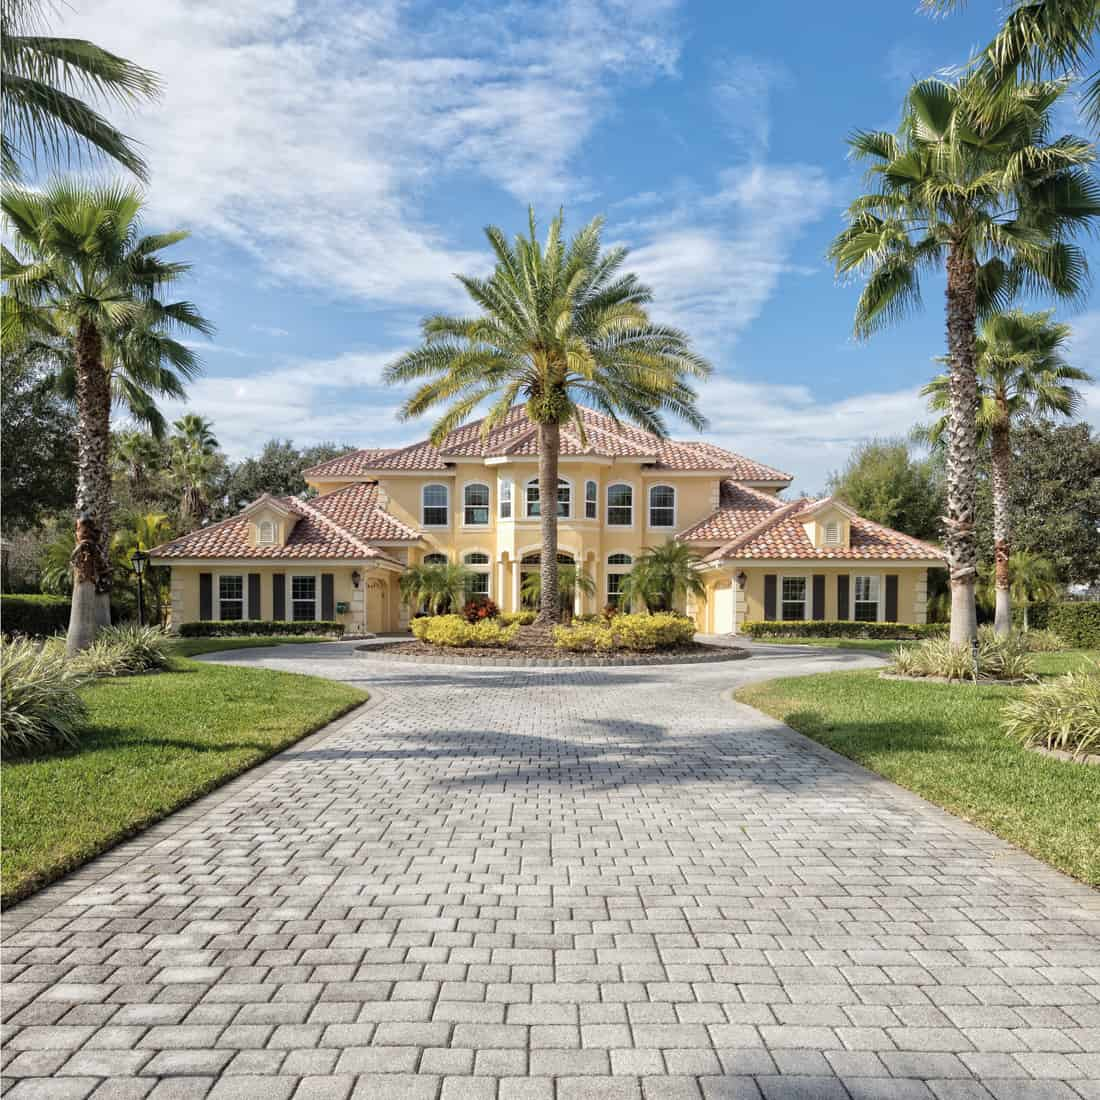 Exterior view of a beautiful estate home with paver driveway